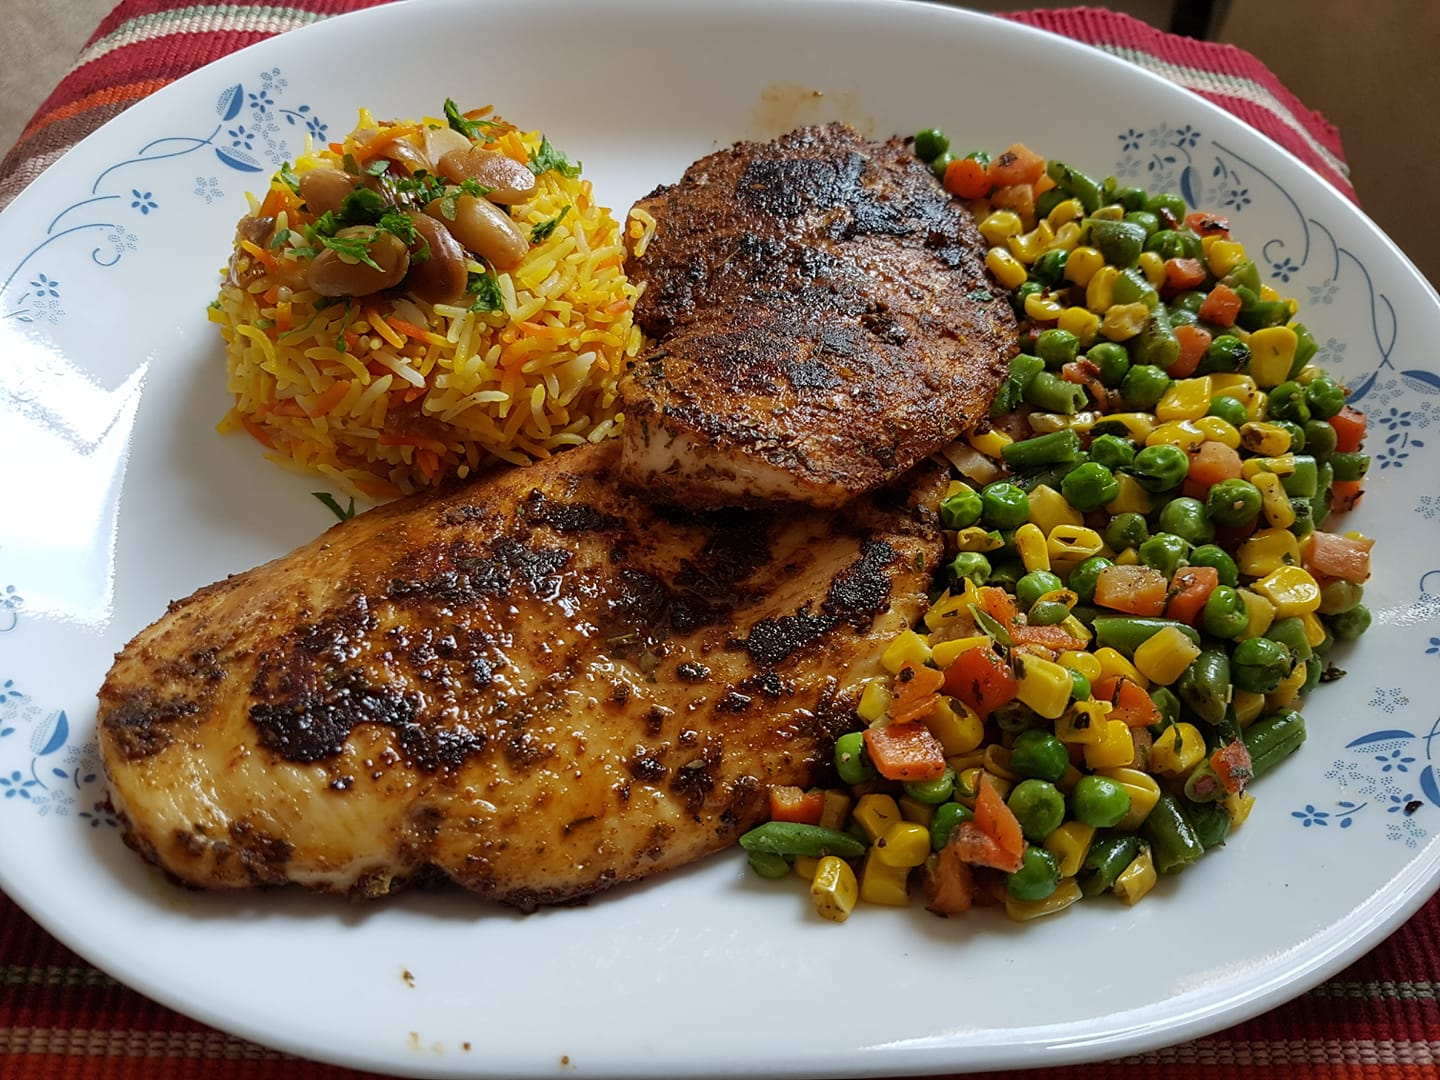 Rasoi_Recipes_Baked chicken with sauteed vegetables and flavoured rice